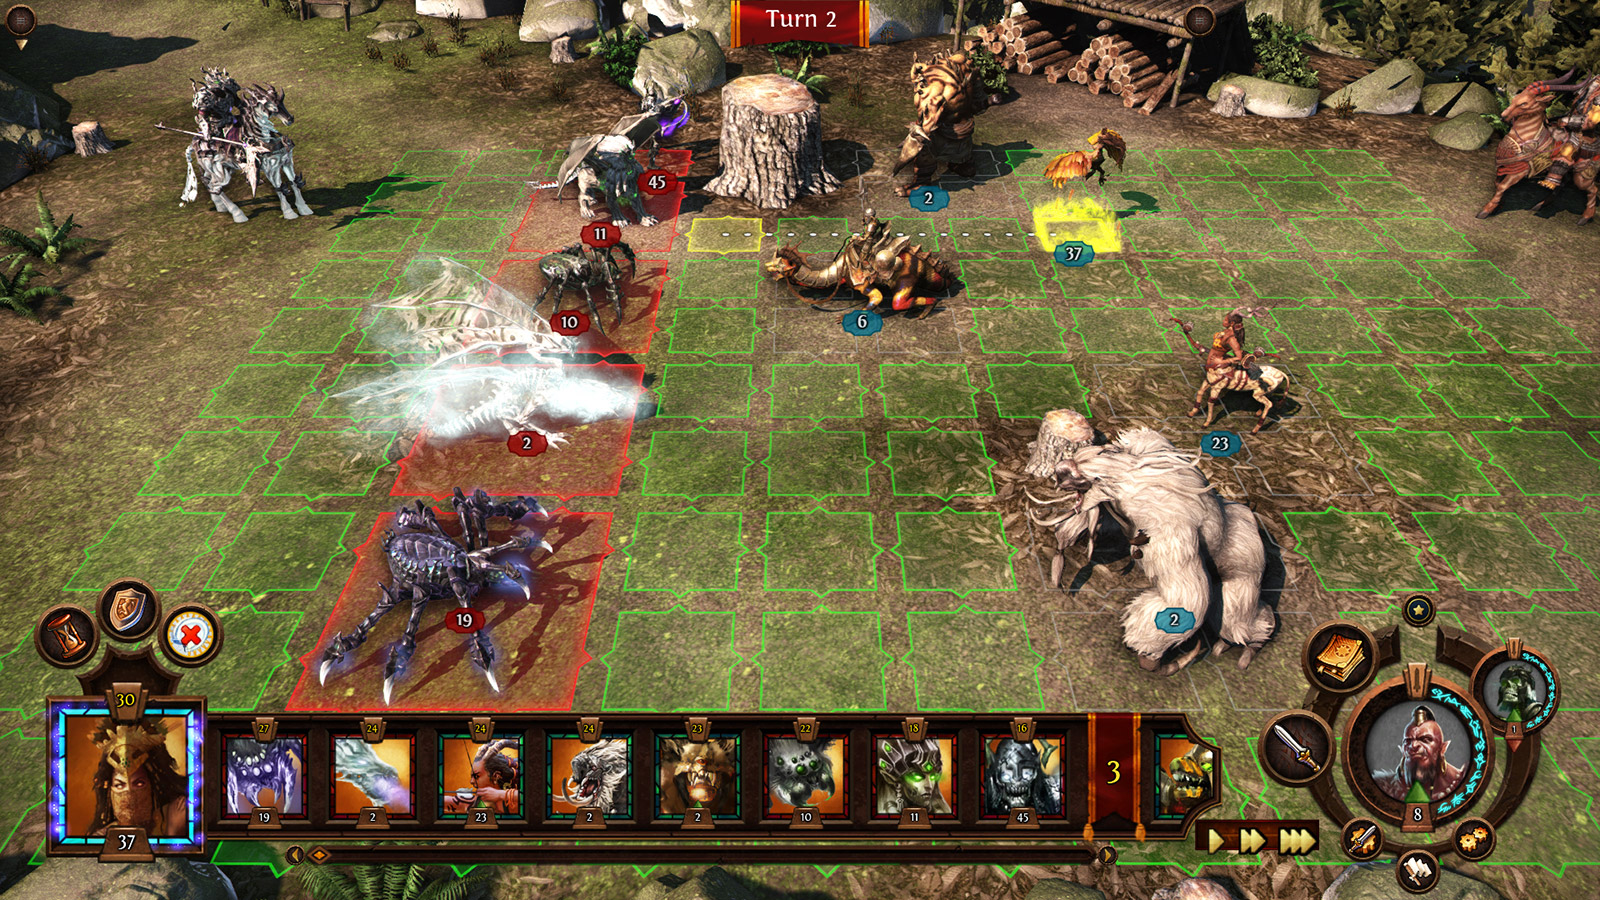 STRATEGY Heroes of Might and Magic 7